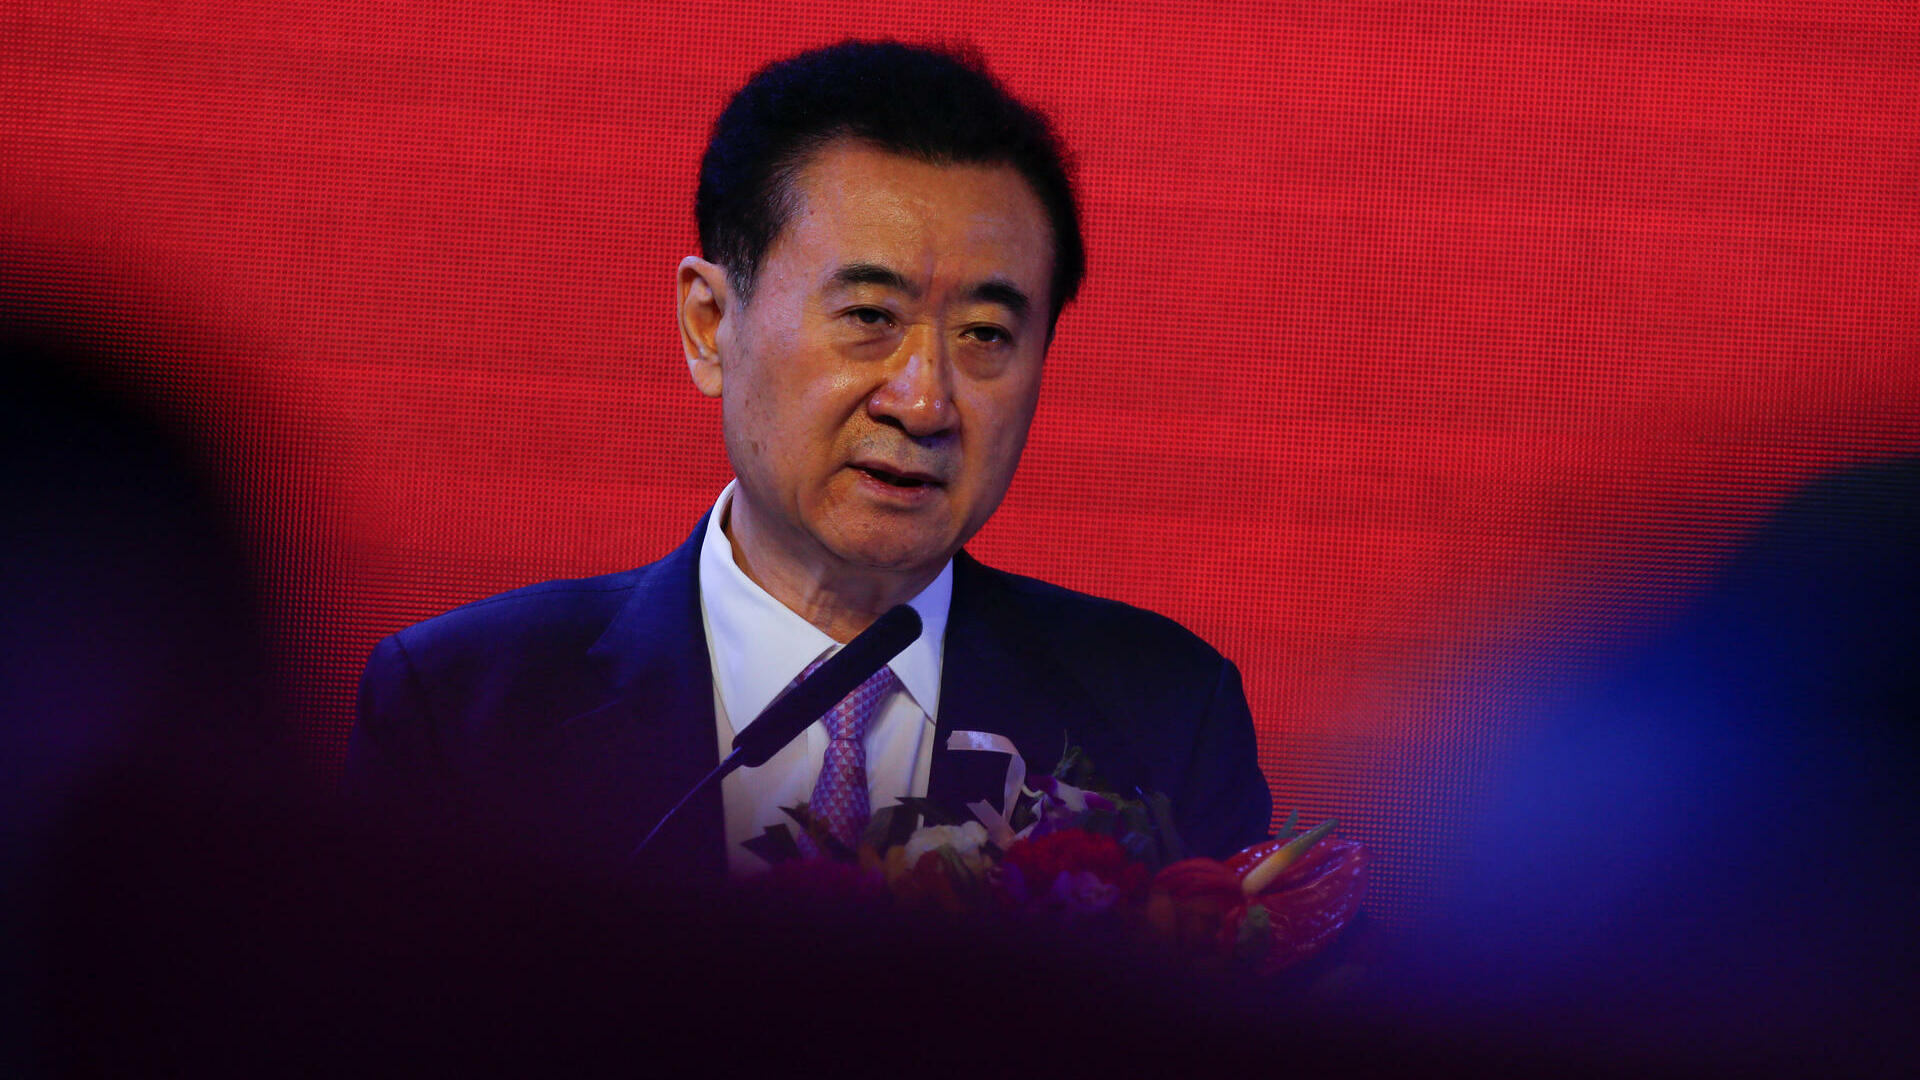 Wang-Jianlin Quelle: REUTERS